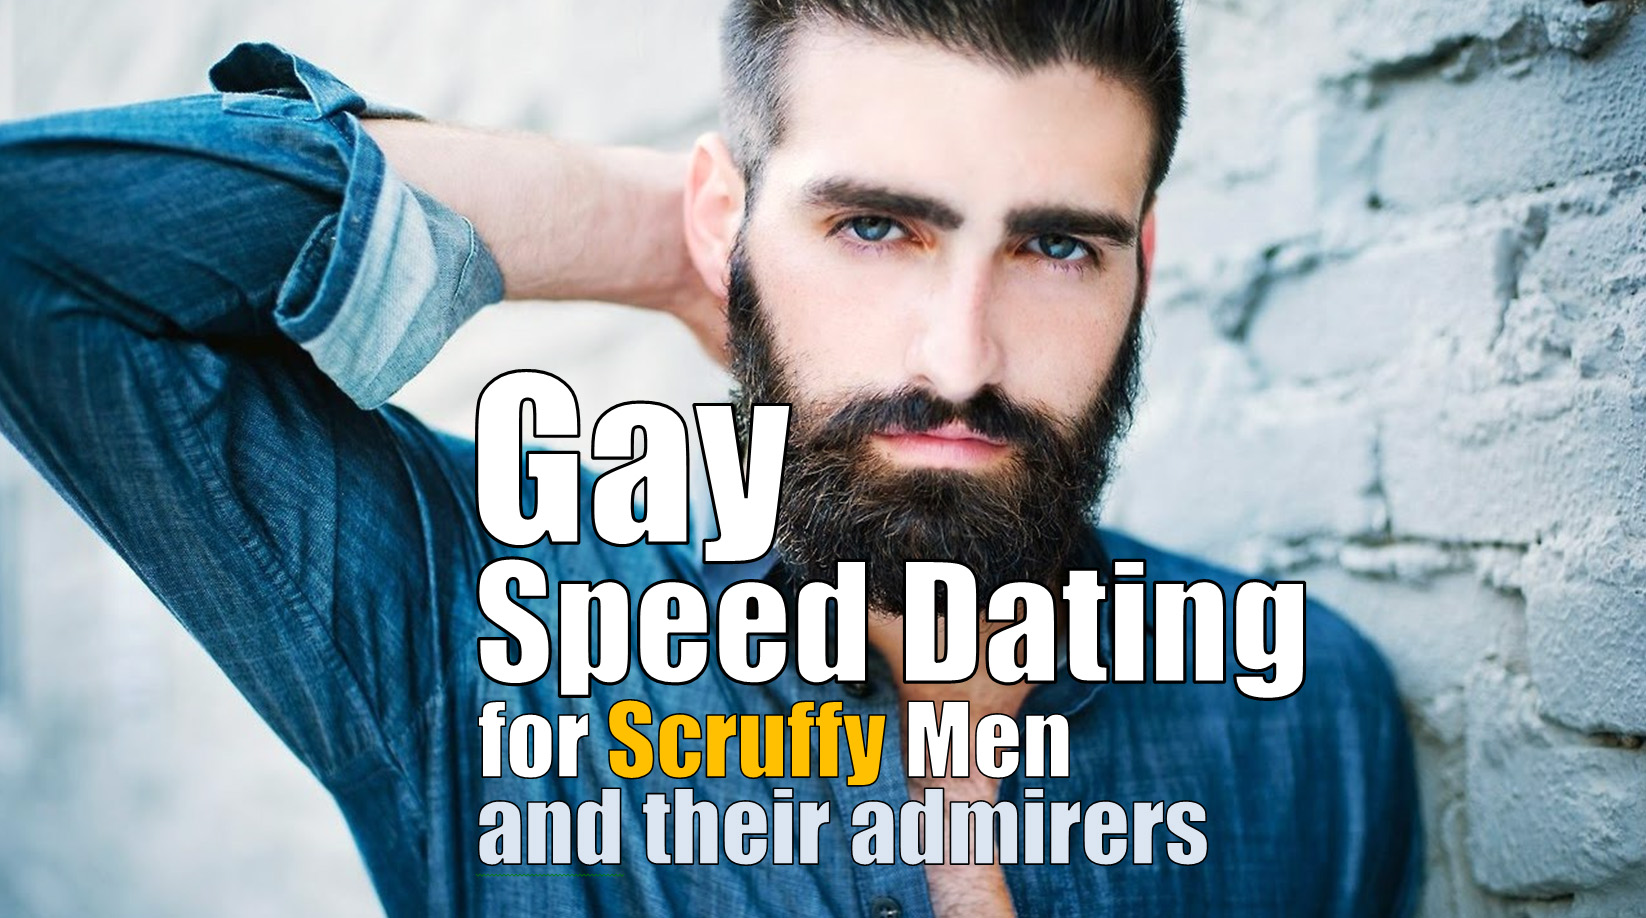 Gay speed dating events chicago